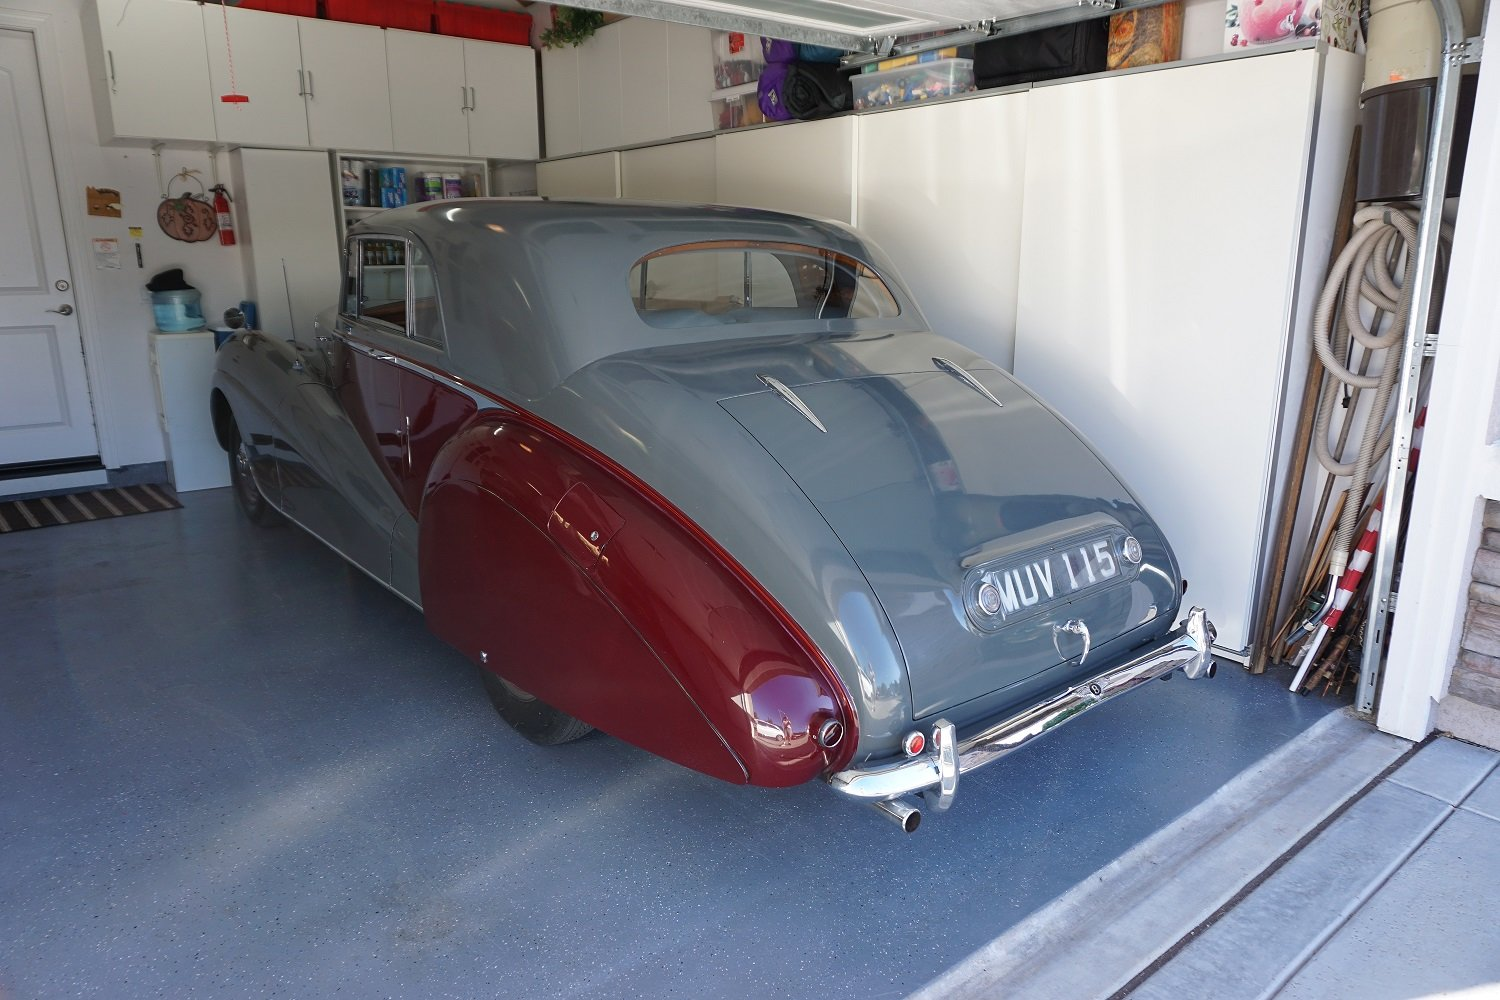 1951 Bentley Park Ward Coupe RHD #21863 For Sale (picture 4 of 6)